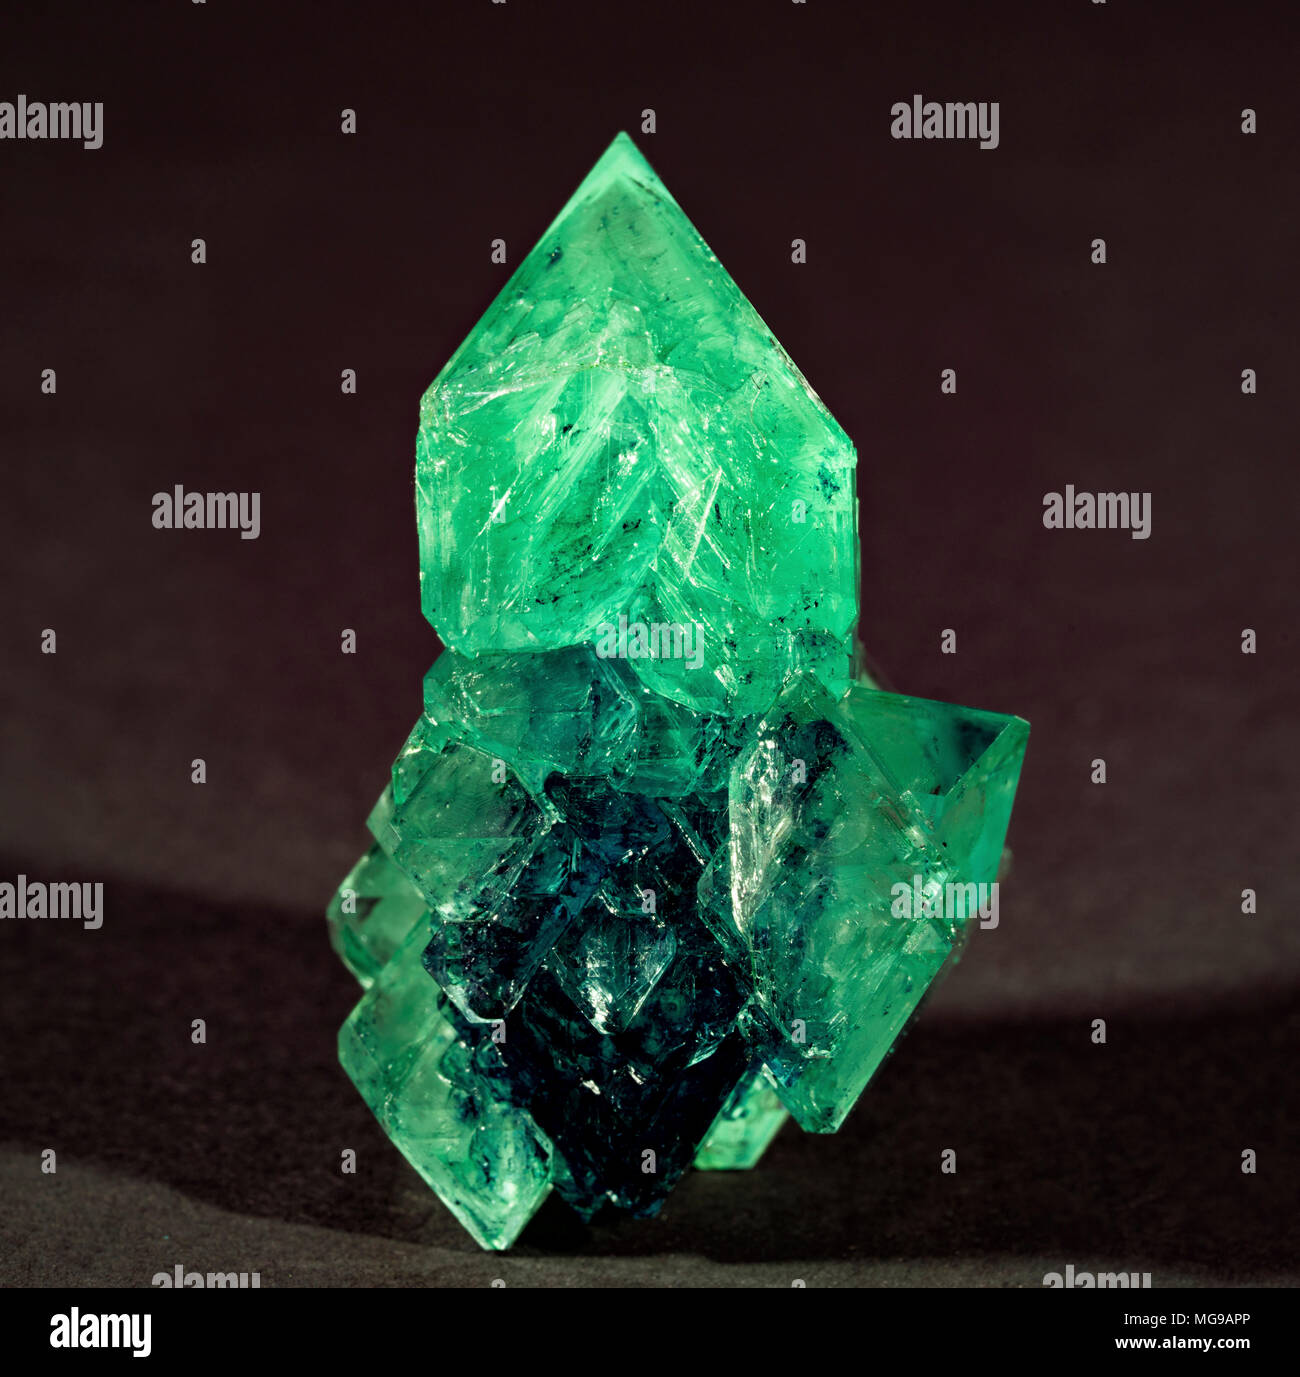 Green mineral. - Stock Image